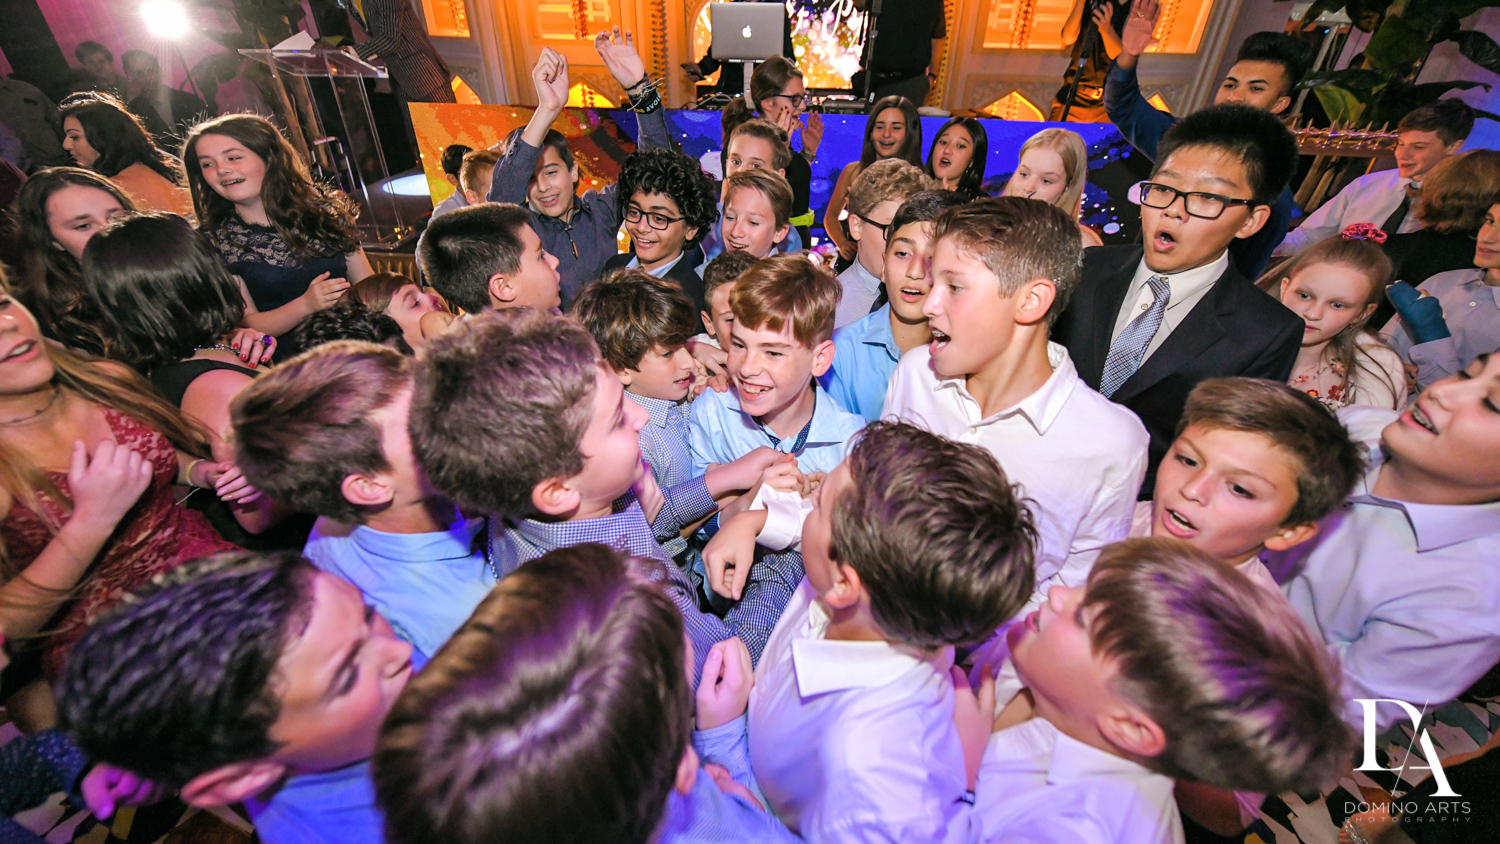 fun party pictures at Exotic Moroccan BNai Mitzvah at Lavan by Domino Arts Photography